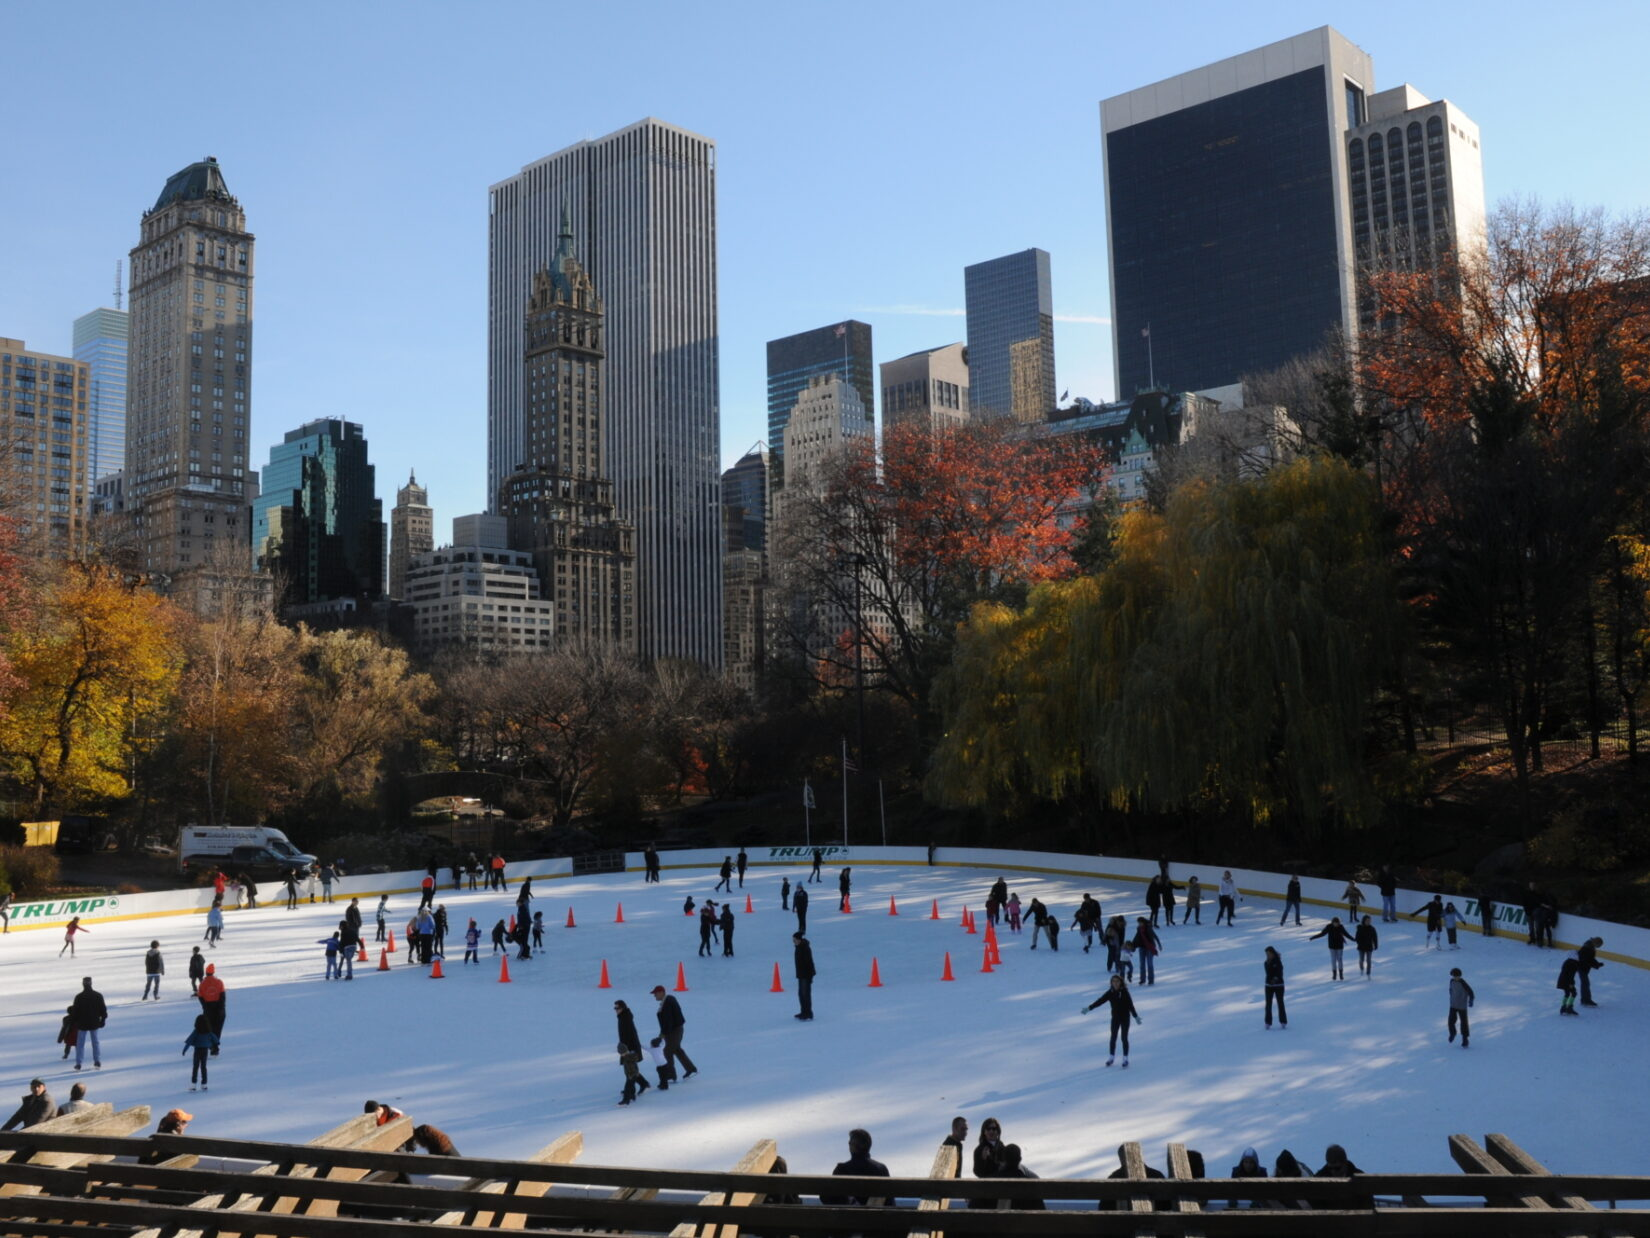 Skaters enjoy the Wollman Rink beneath the skyline